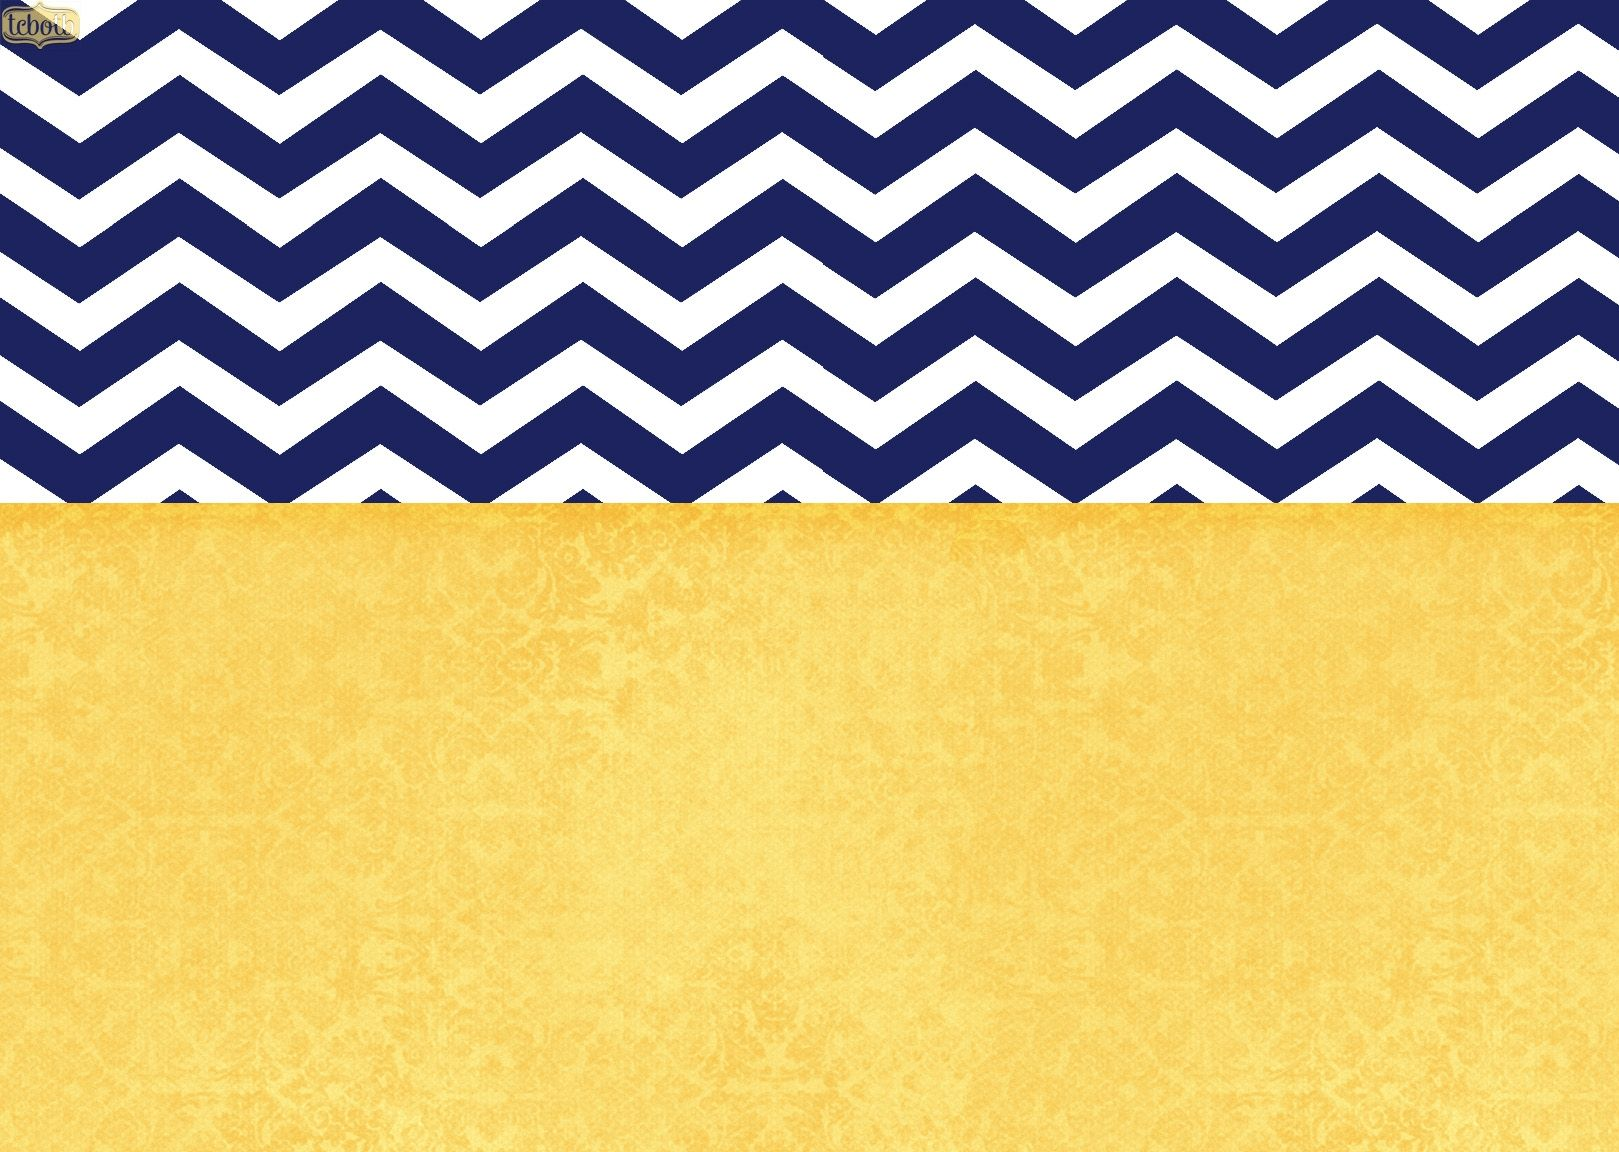 Free twitter background pattern size download download twitter free twitter background pattern size download download twitter background pattern size hd download free twitter voltagebd Choice Image